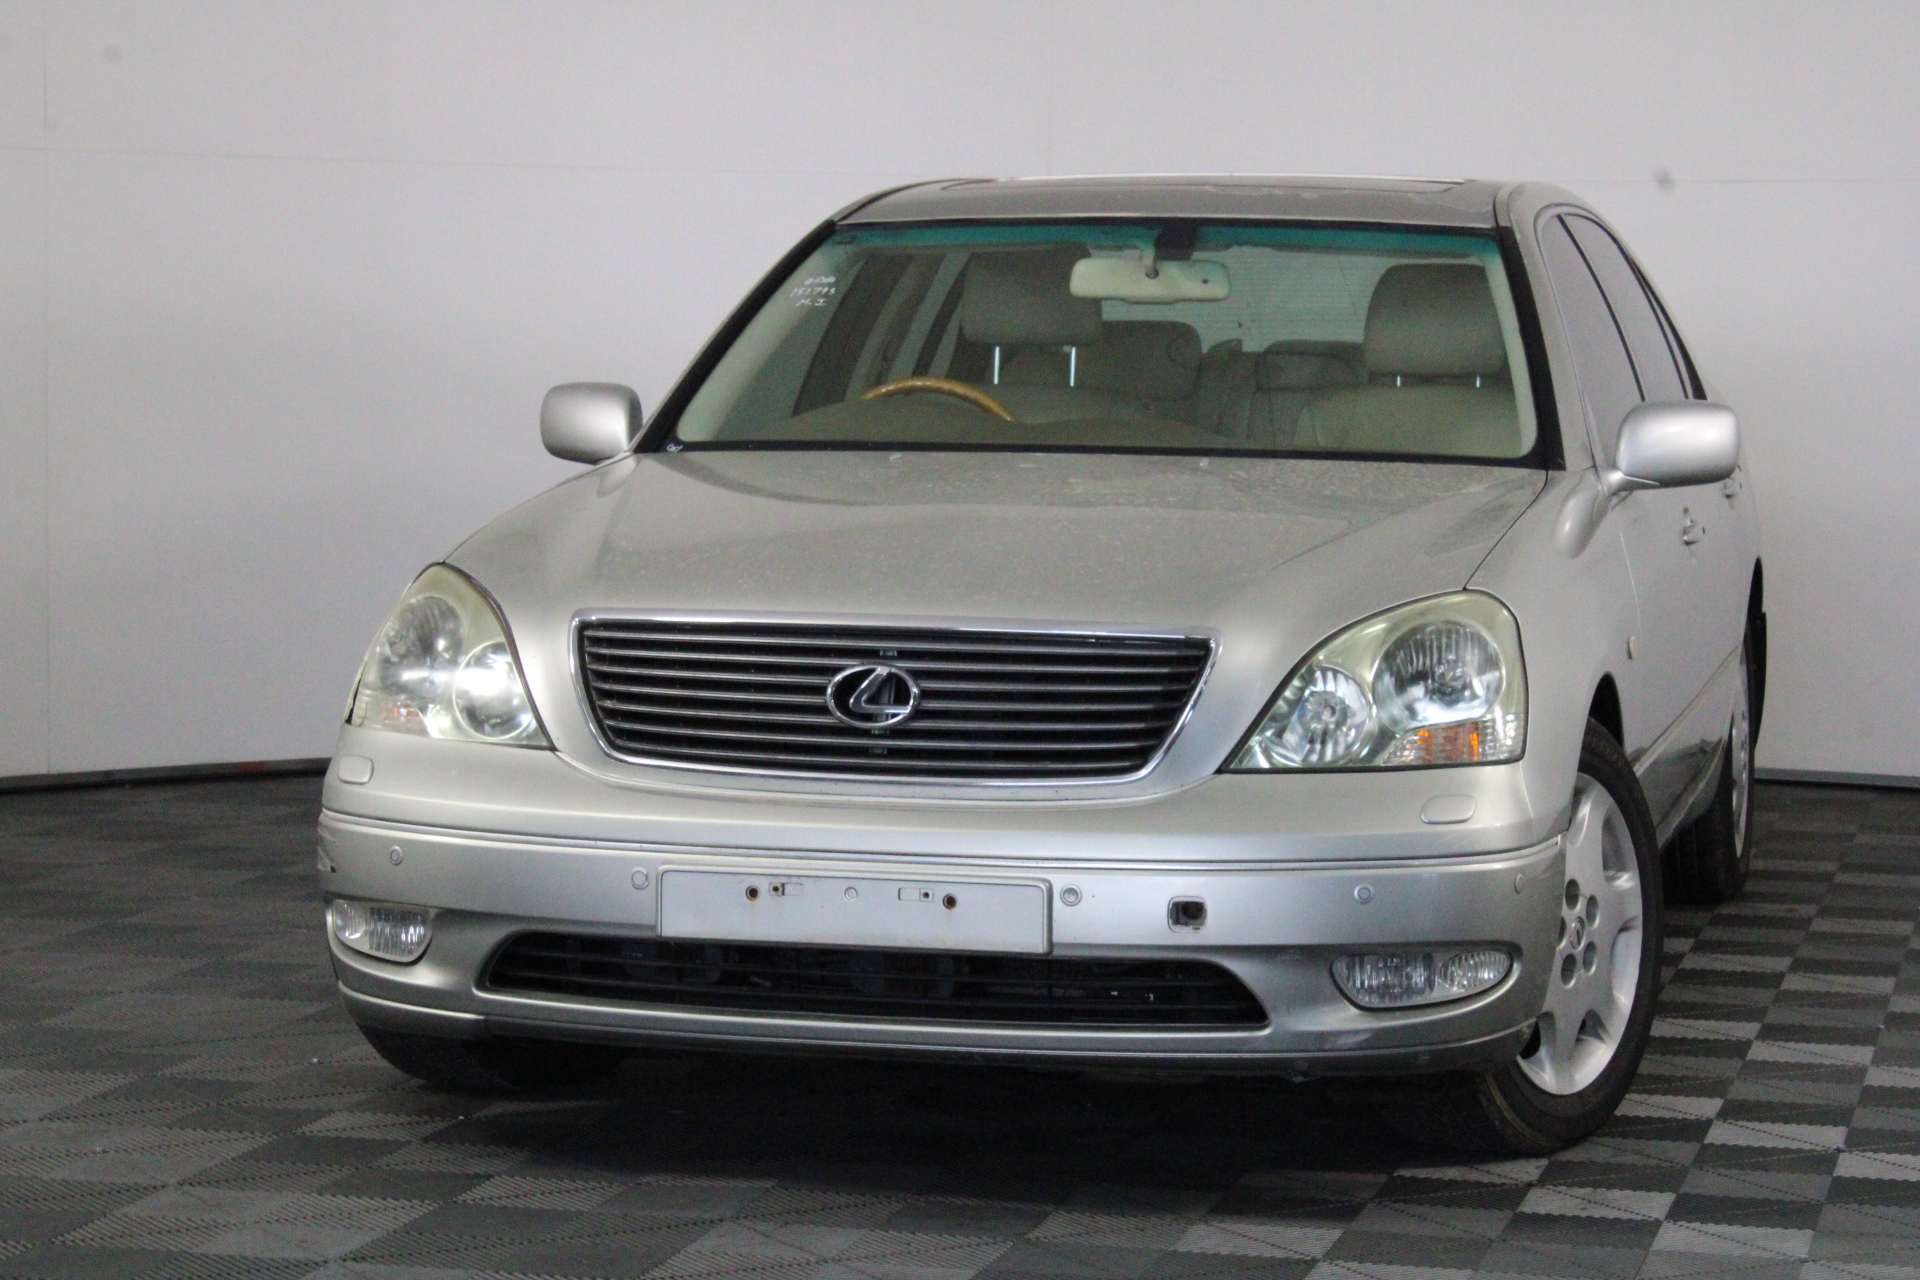 2000 Lexus LS430 Automatic Sedan(WOVR+Repair)